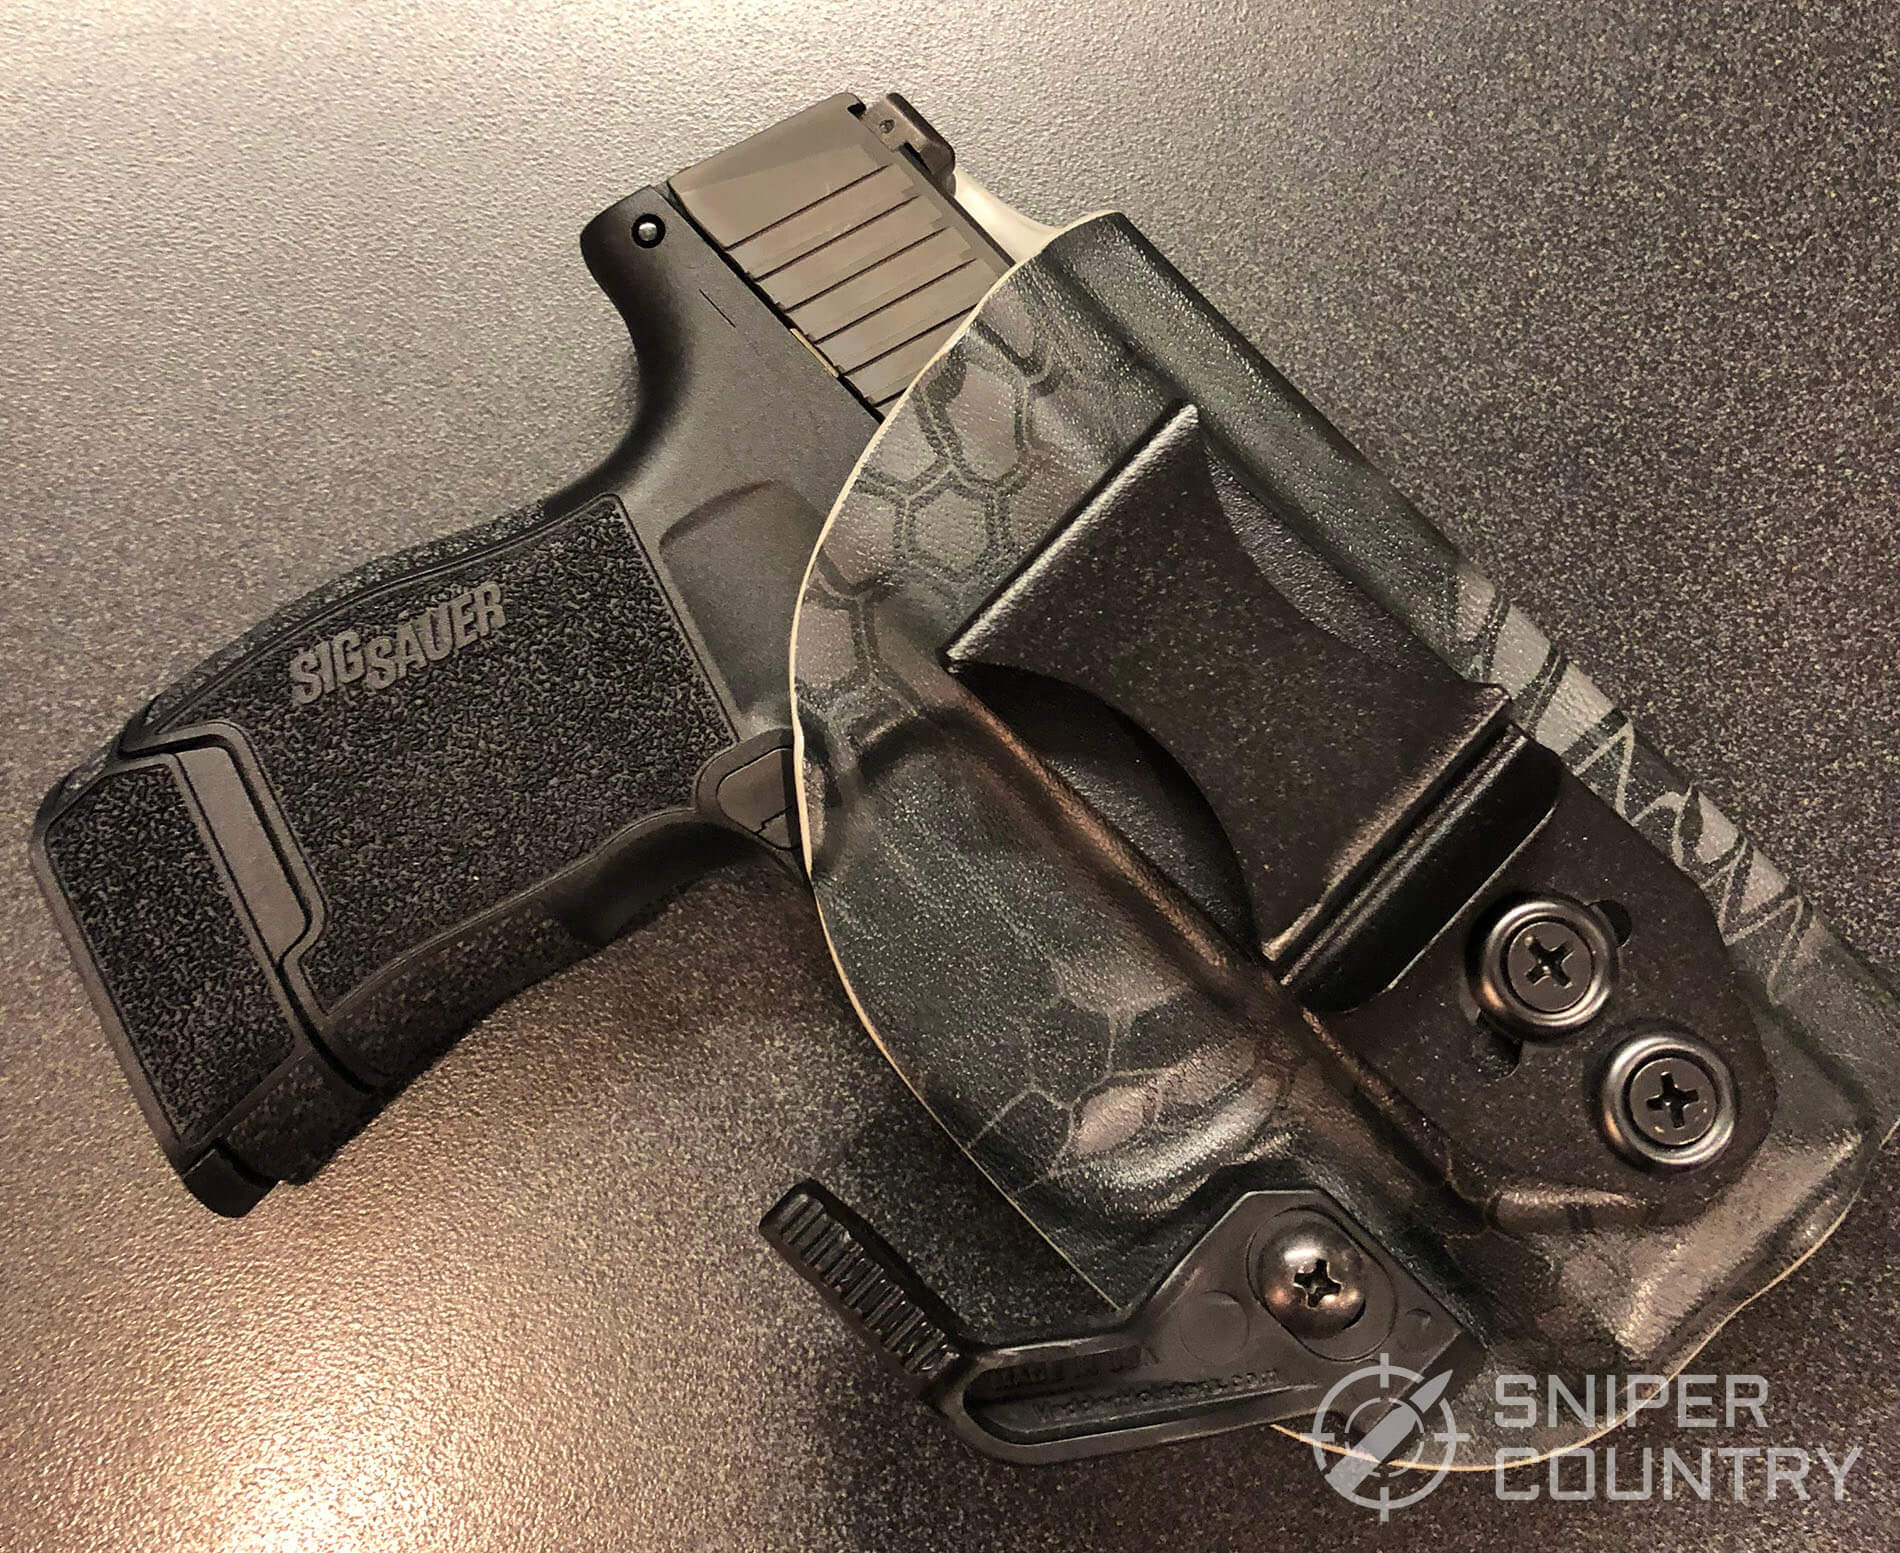 SIG P365 in holster